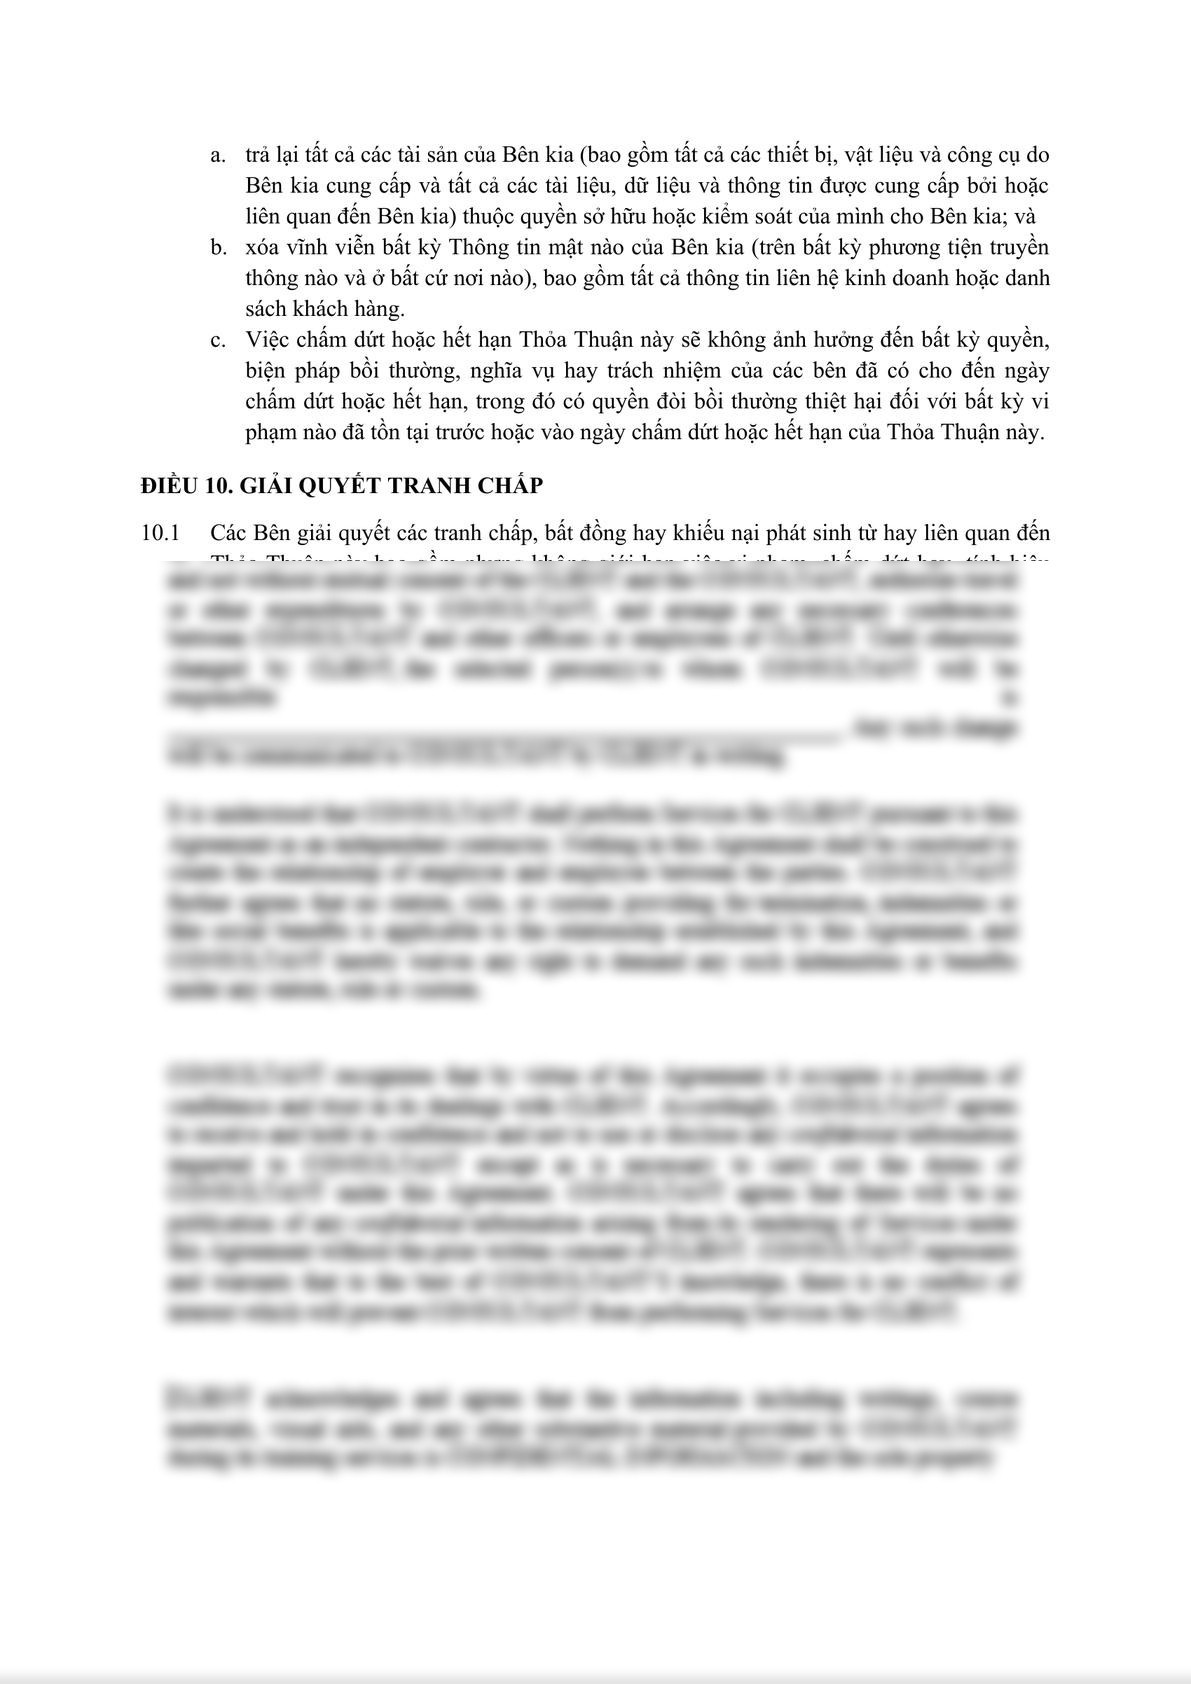 Master project collaboration agreement-7